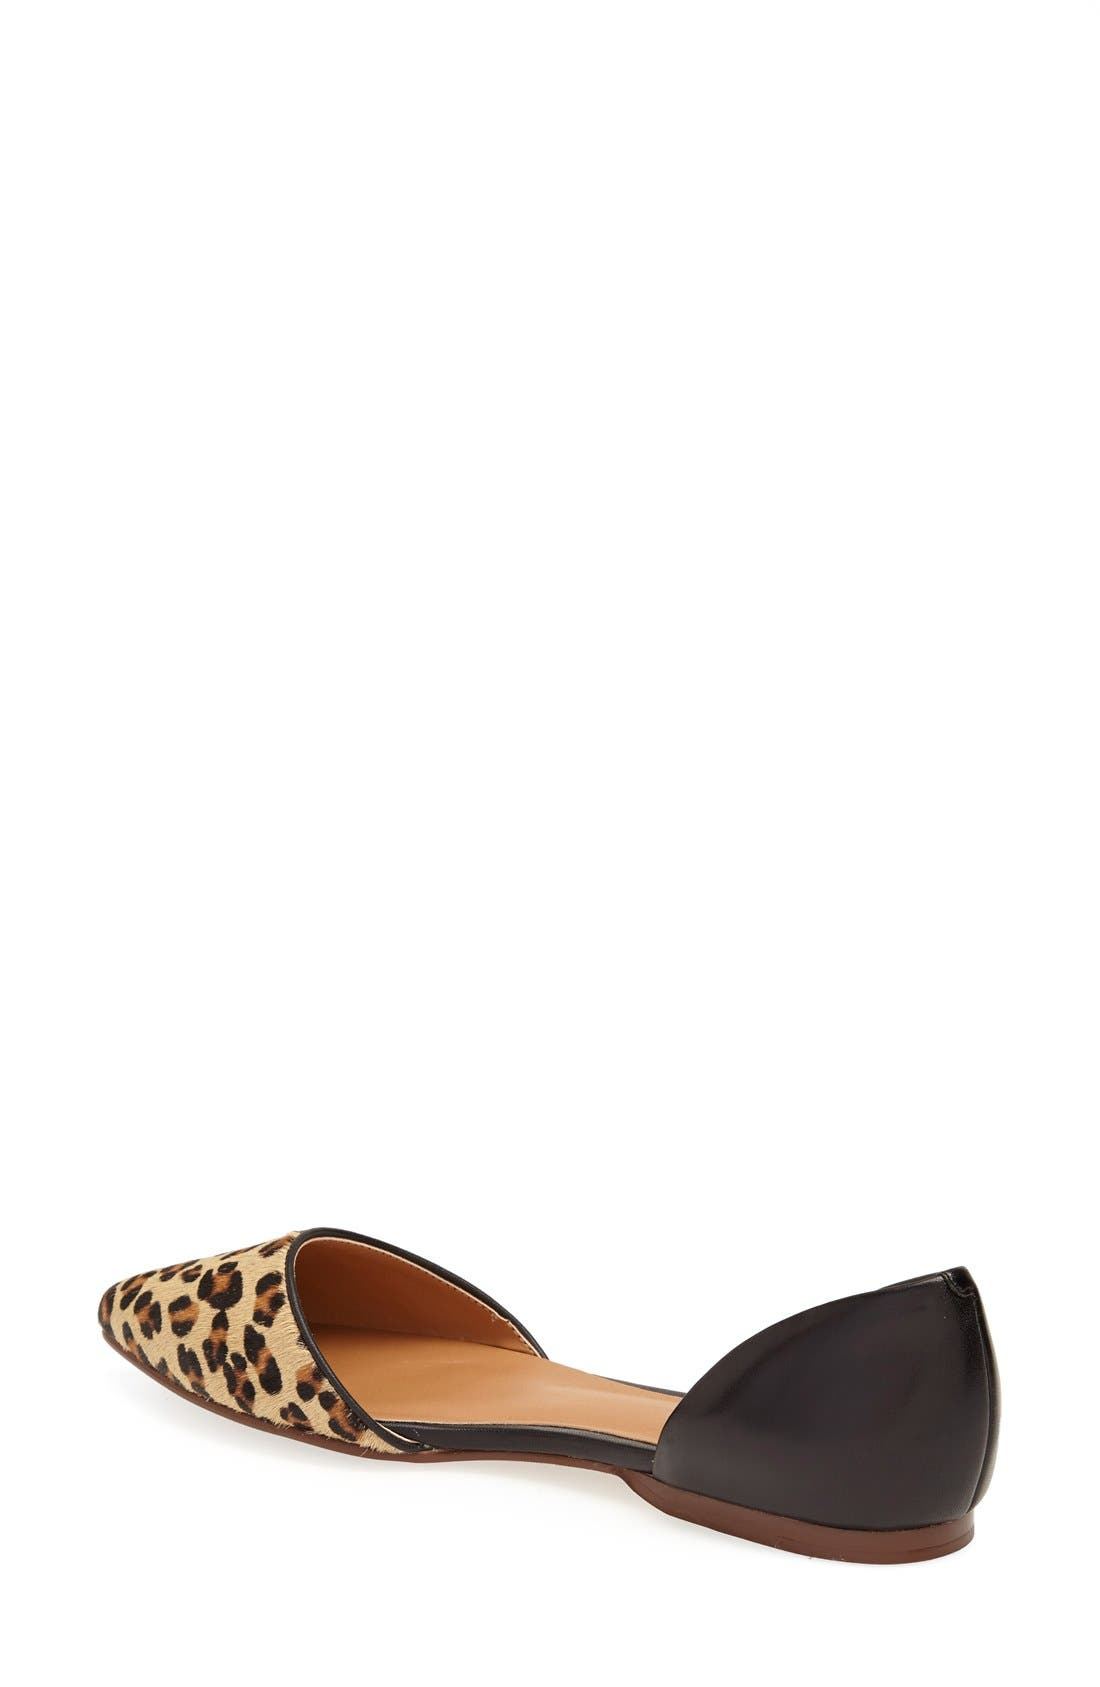 'Kayla' Leather & Calf Hair Pointy Toe Flat,                             Alternate thumbnail 2, color,                             Tan Leopard Combo